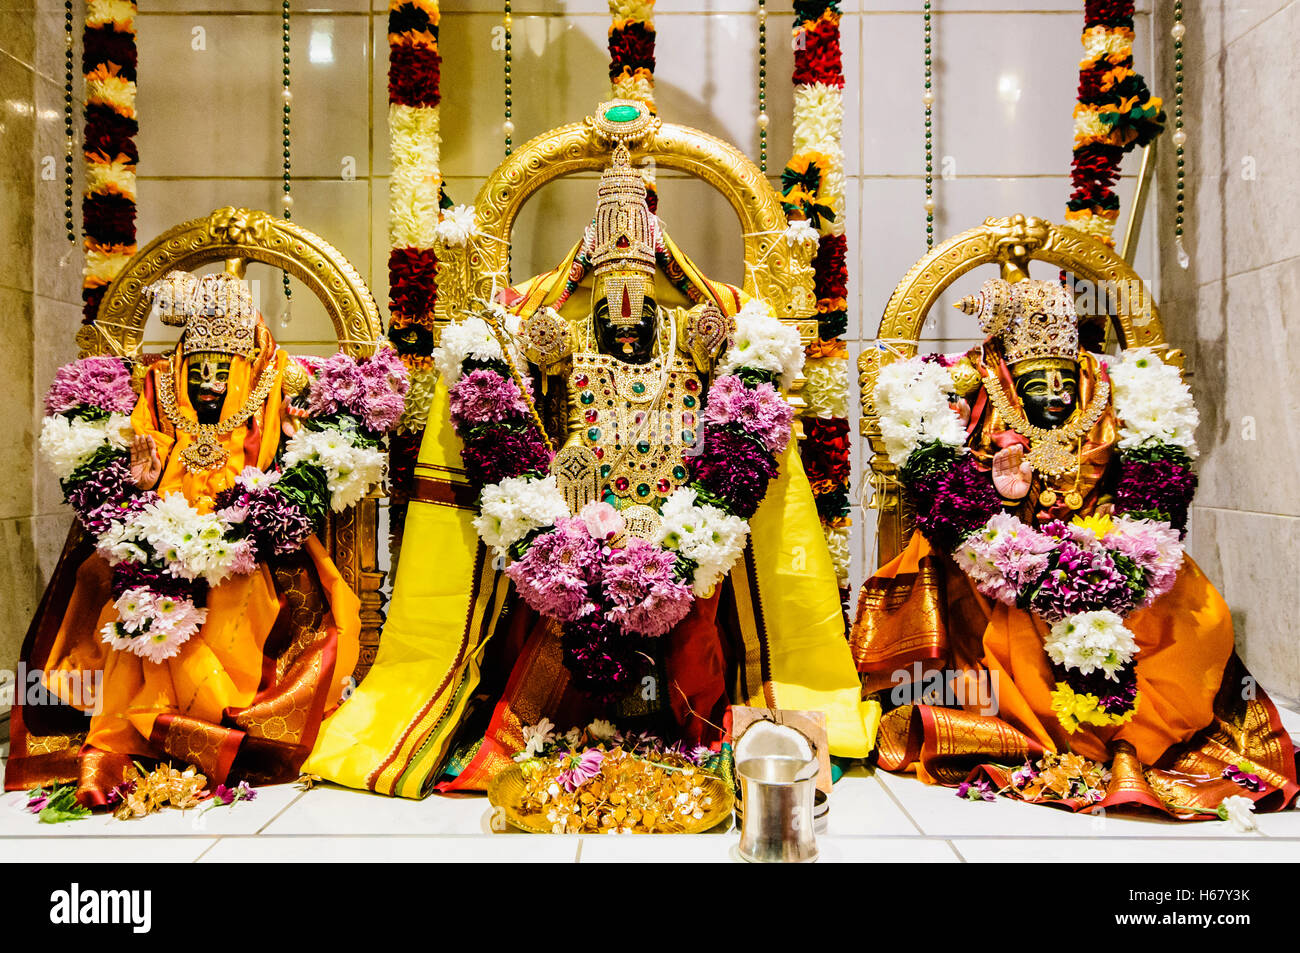 Ornate Hindu Deities and gifts at the altar of a Temple. - Stock Image